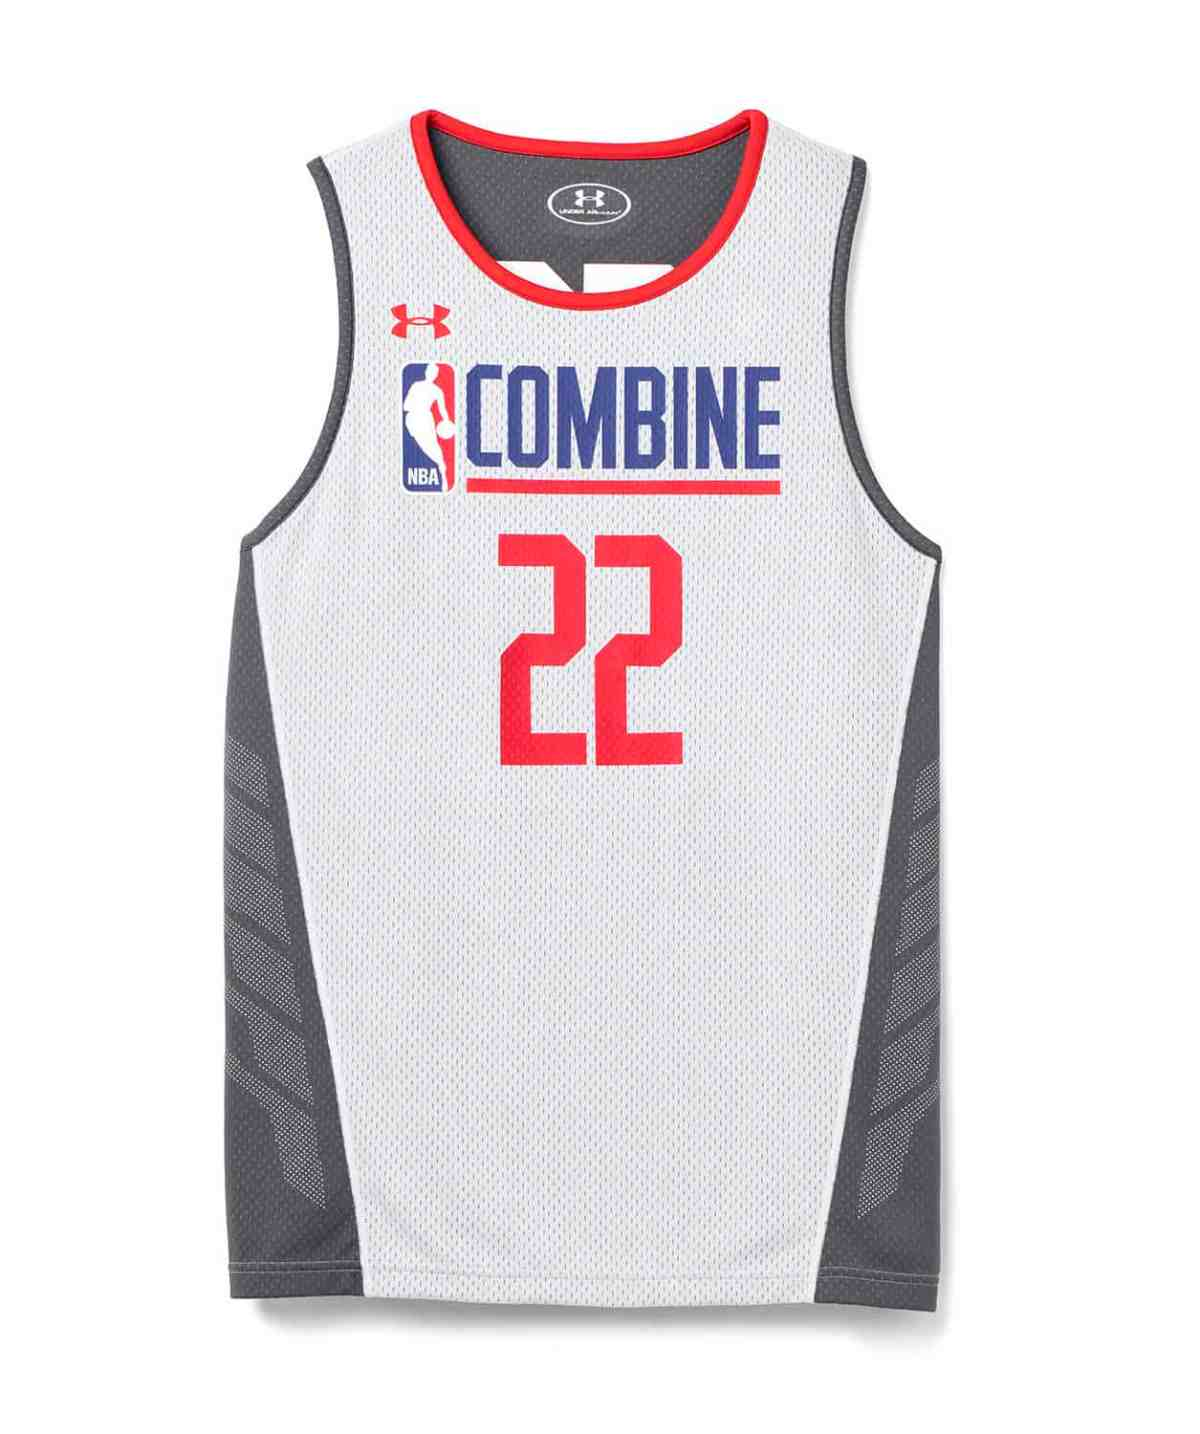 White mens NBA Combine draft jersey by Under Armour